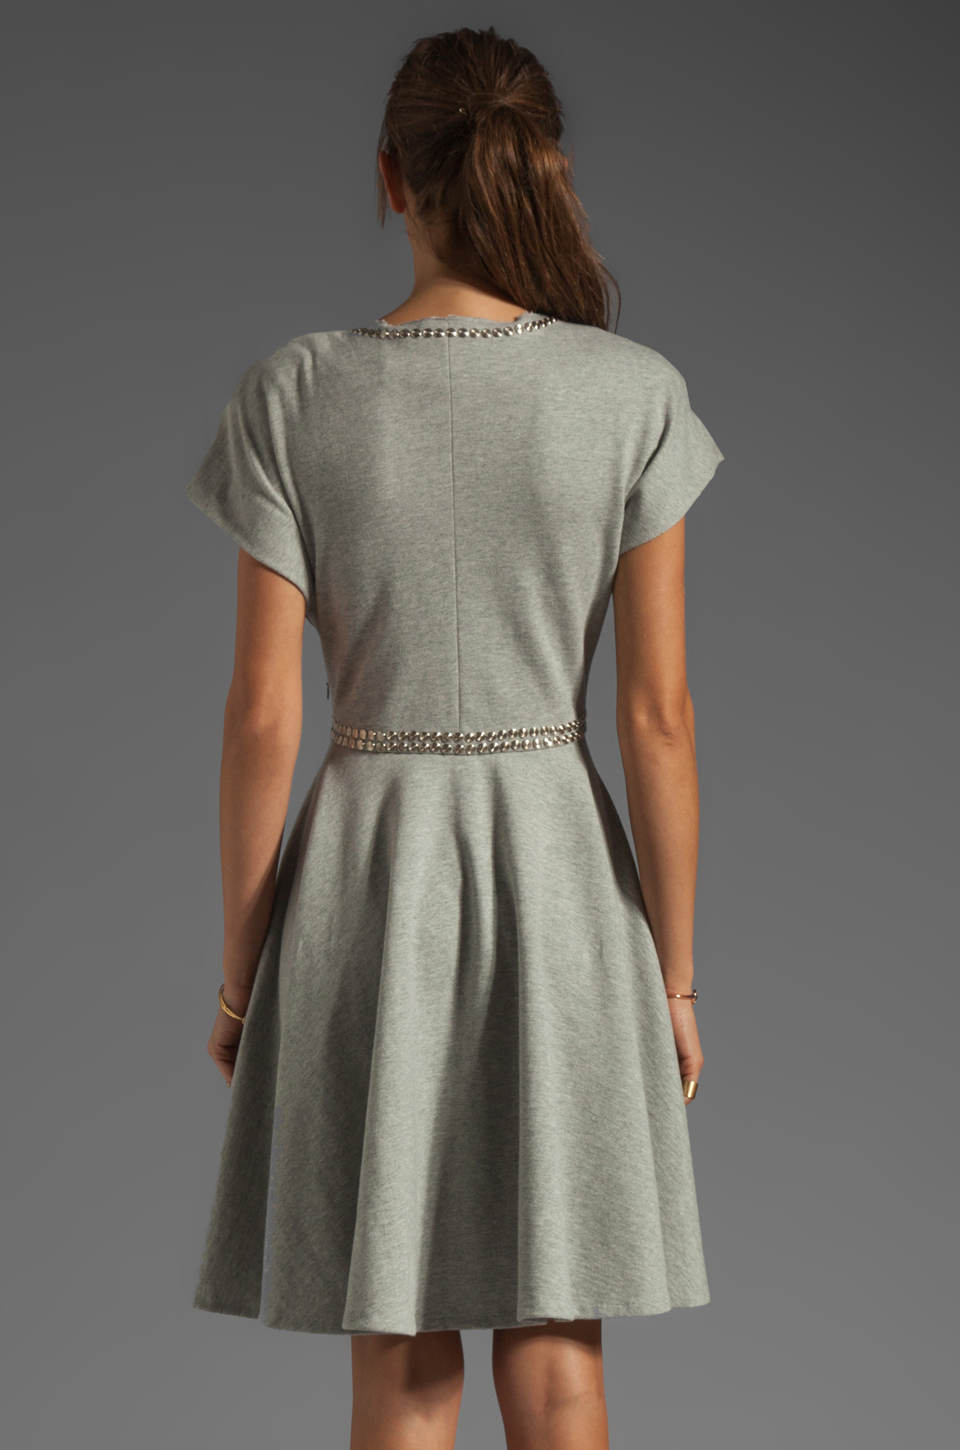 Norma Kamali Modern Vintage Active Short Sleeve Flared Dress in Grey with Silver Studs